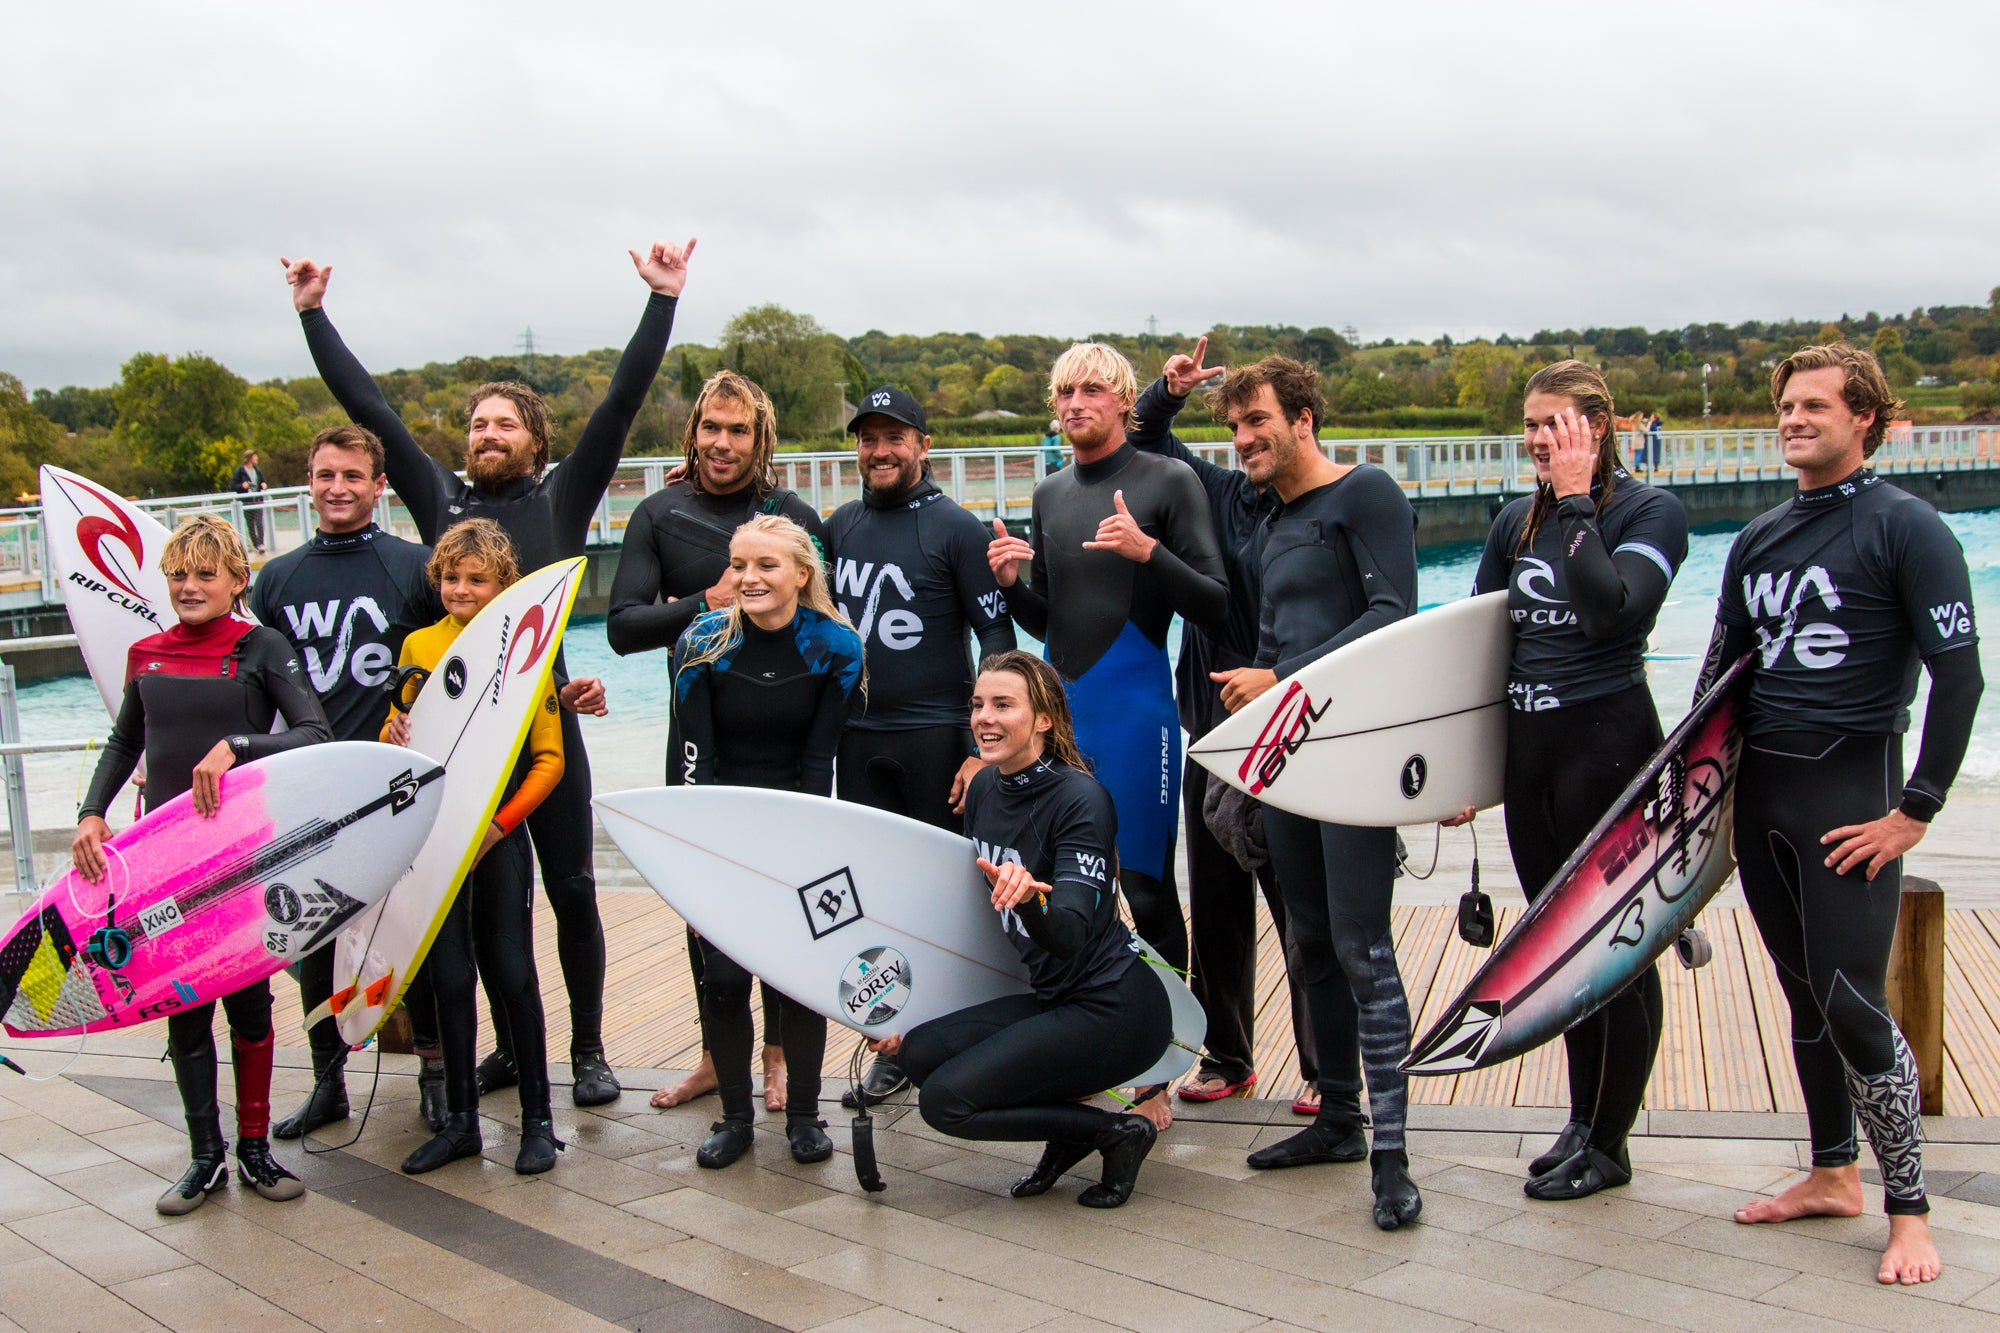 Pro Surfers at the Launch of The Wave Bristol